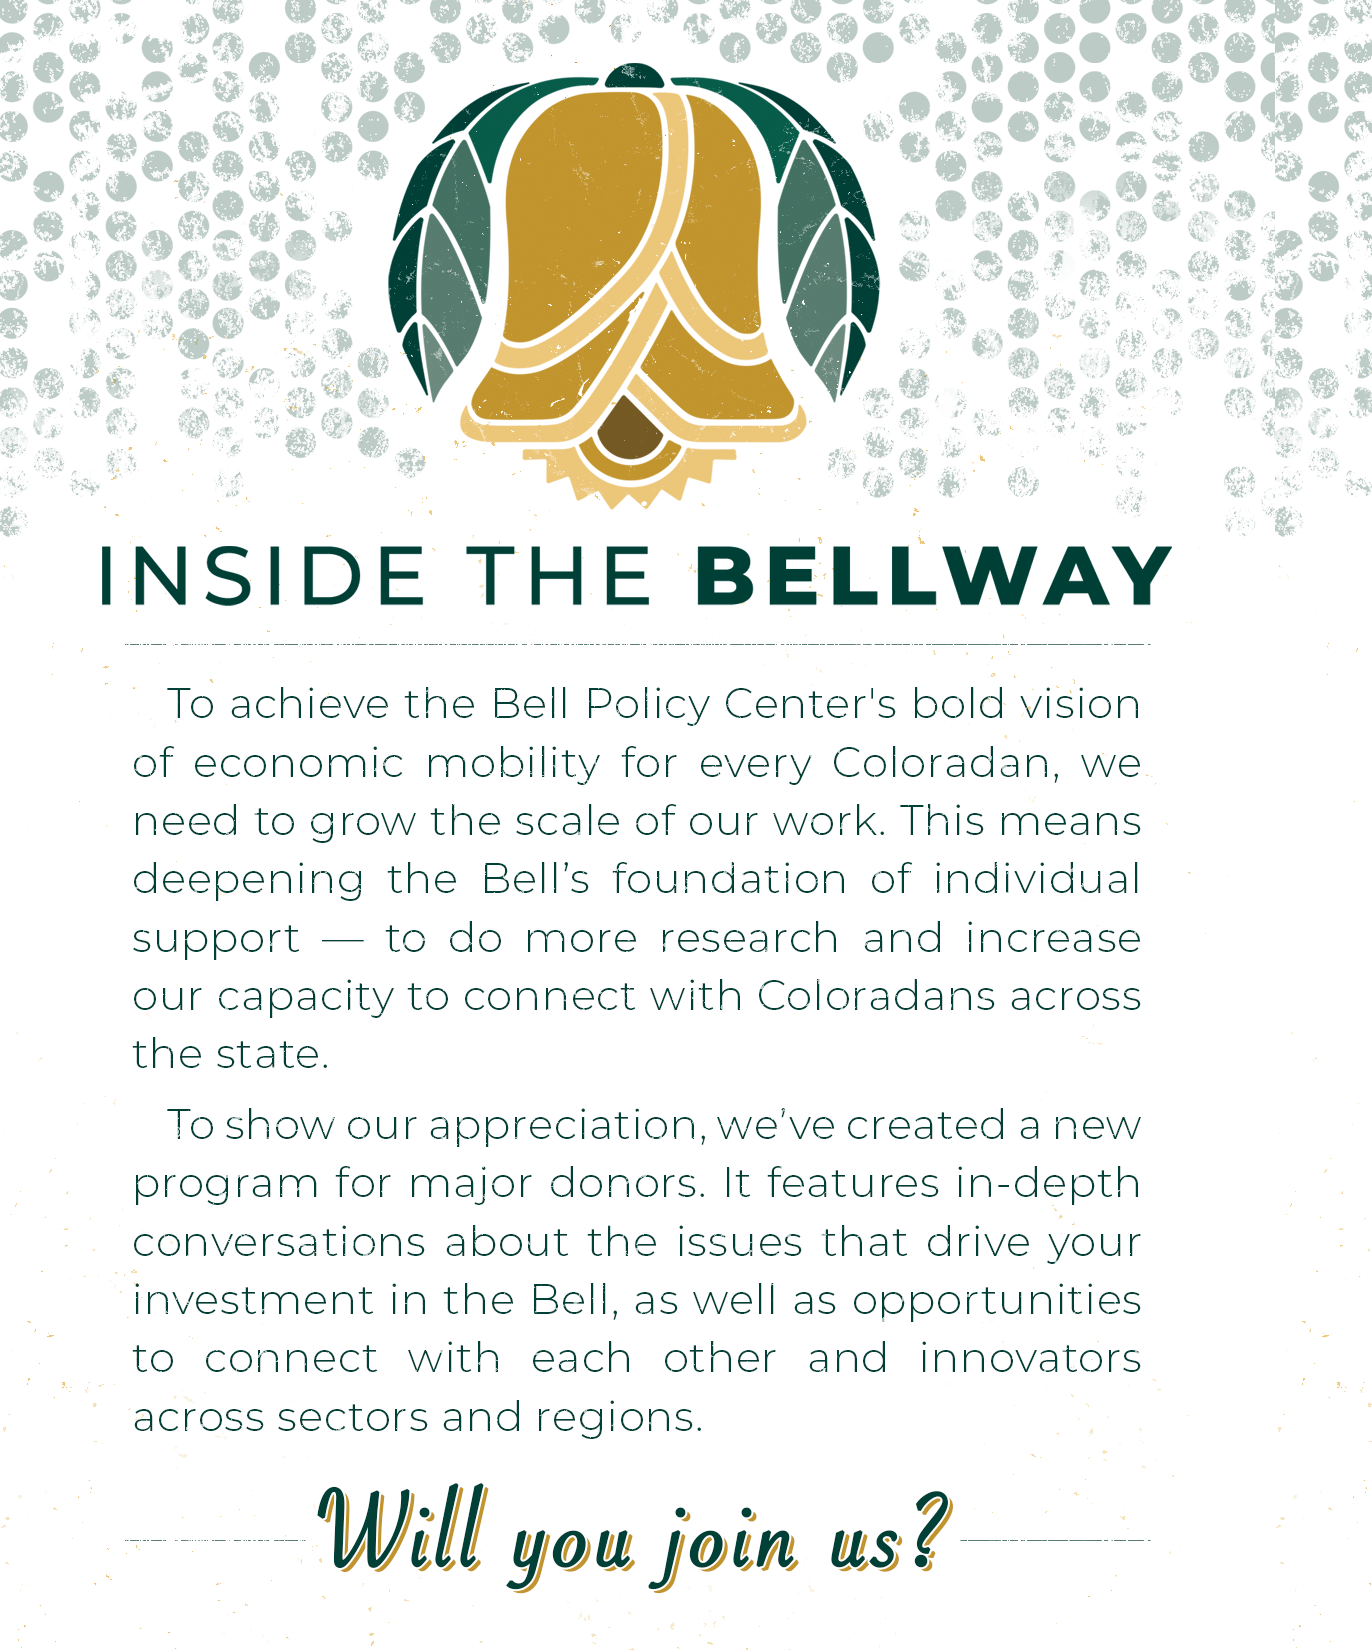 bellway card front.png